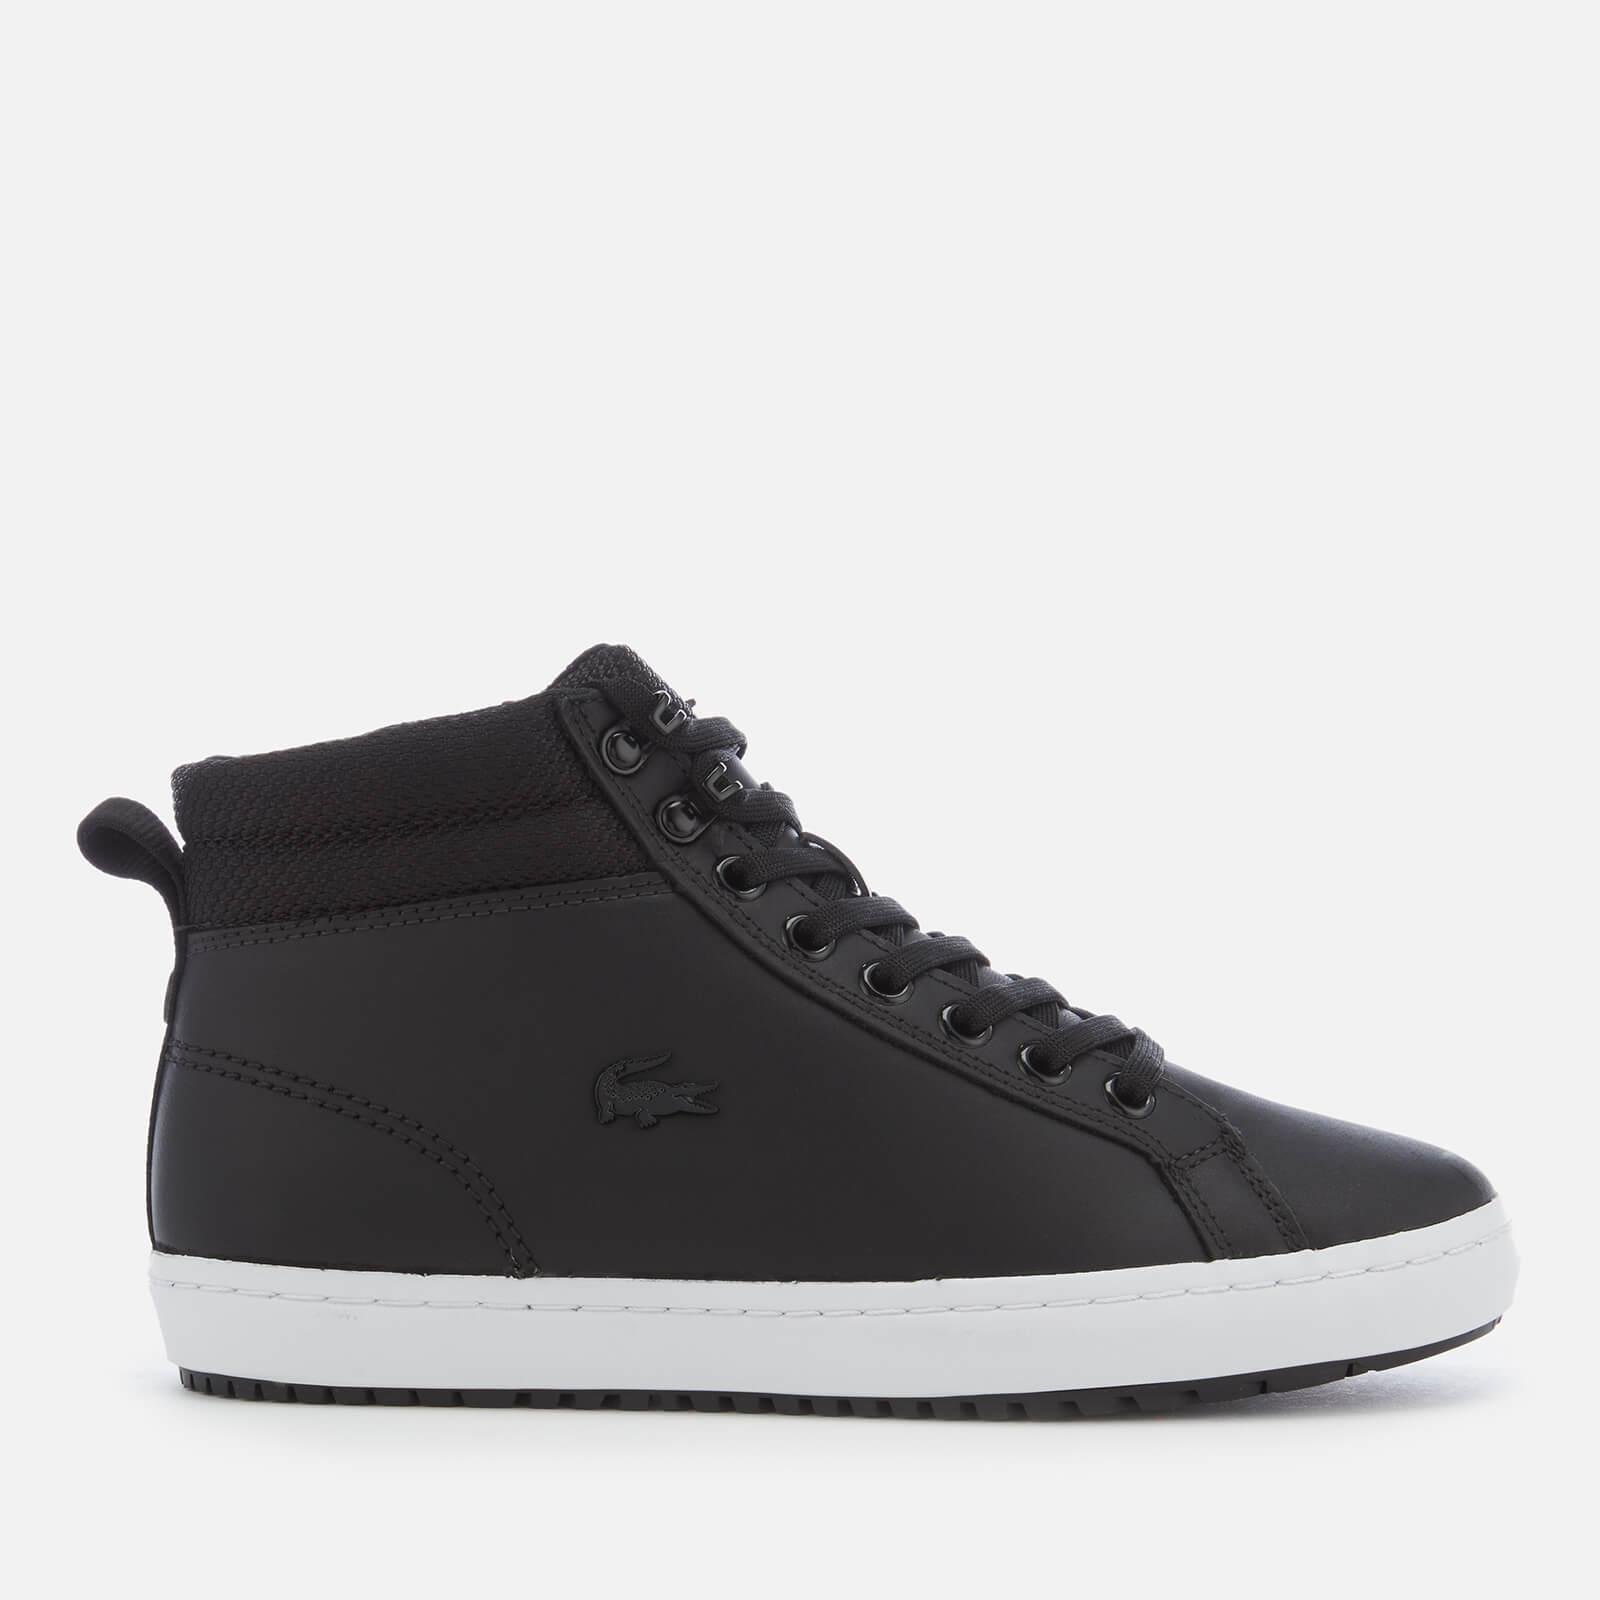 436a0ce1a Lacoste Straigthset Insulate C 318 1 Water Resistant Leather Chukka ...